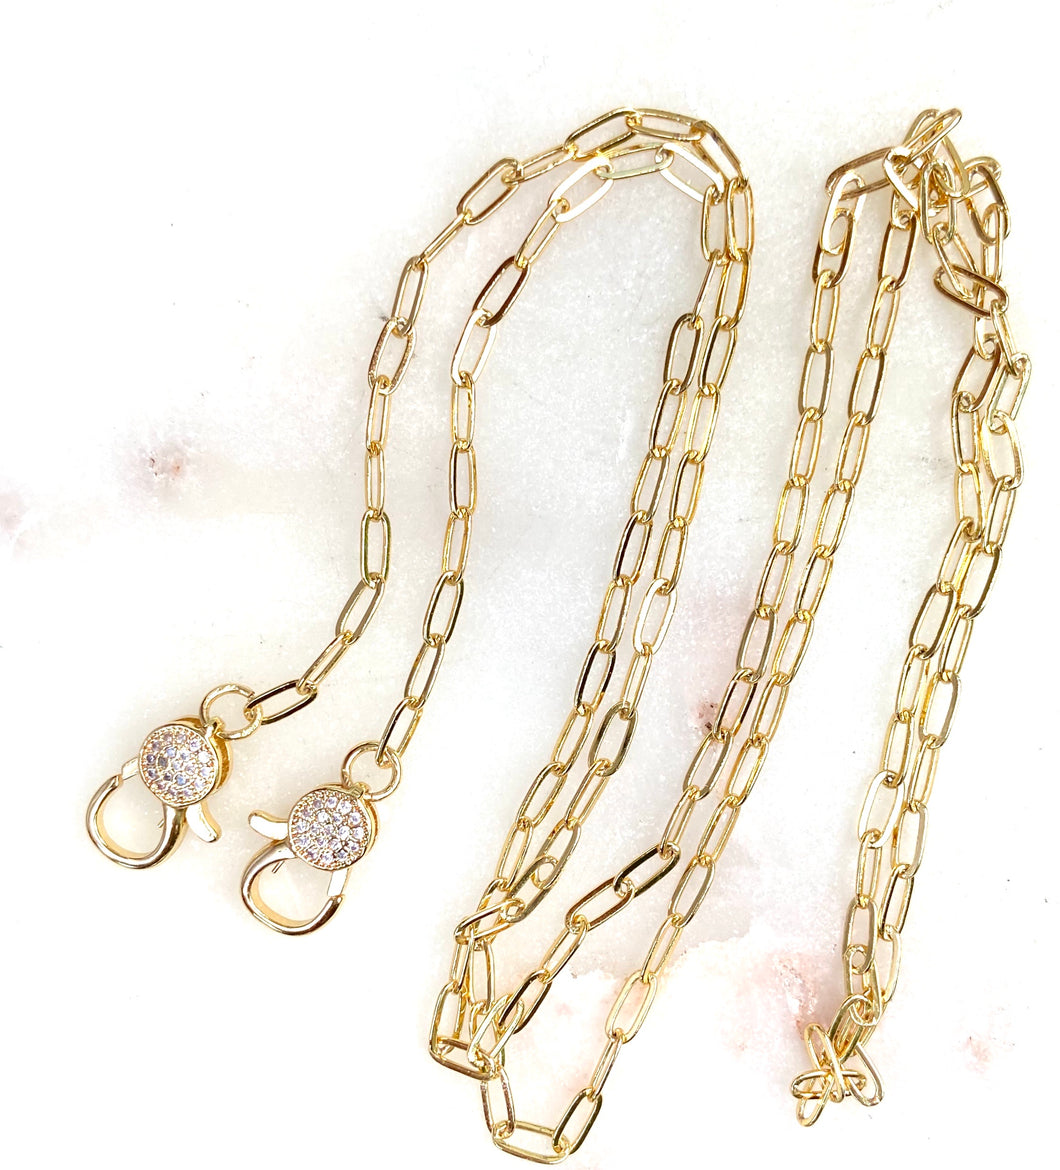 paper clip link chain  with cz stones on clasp for your mask